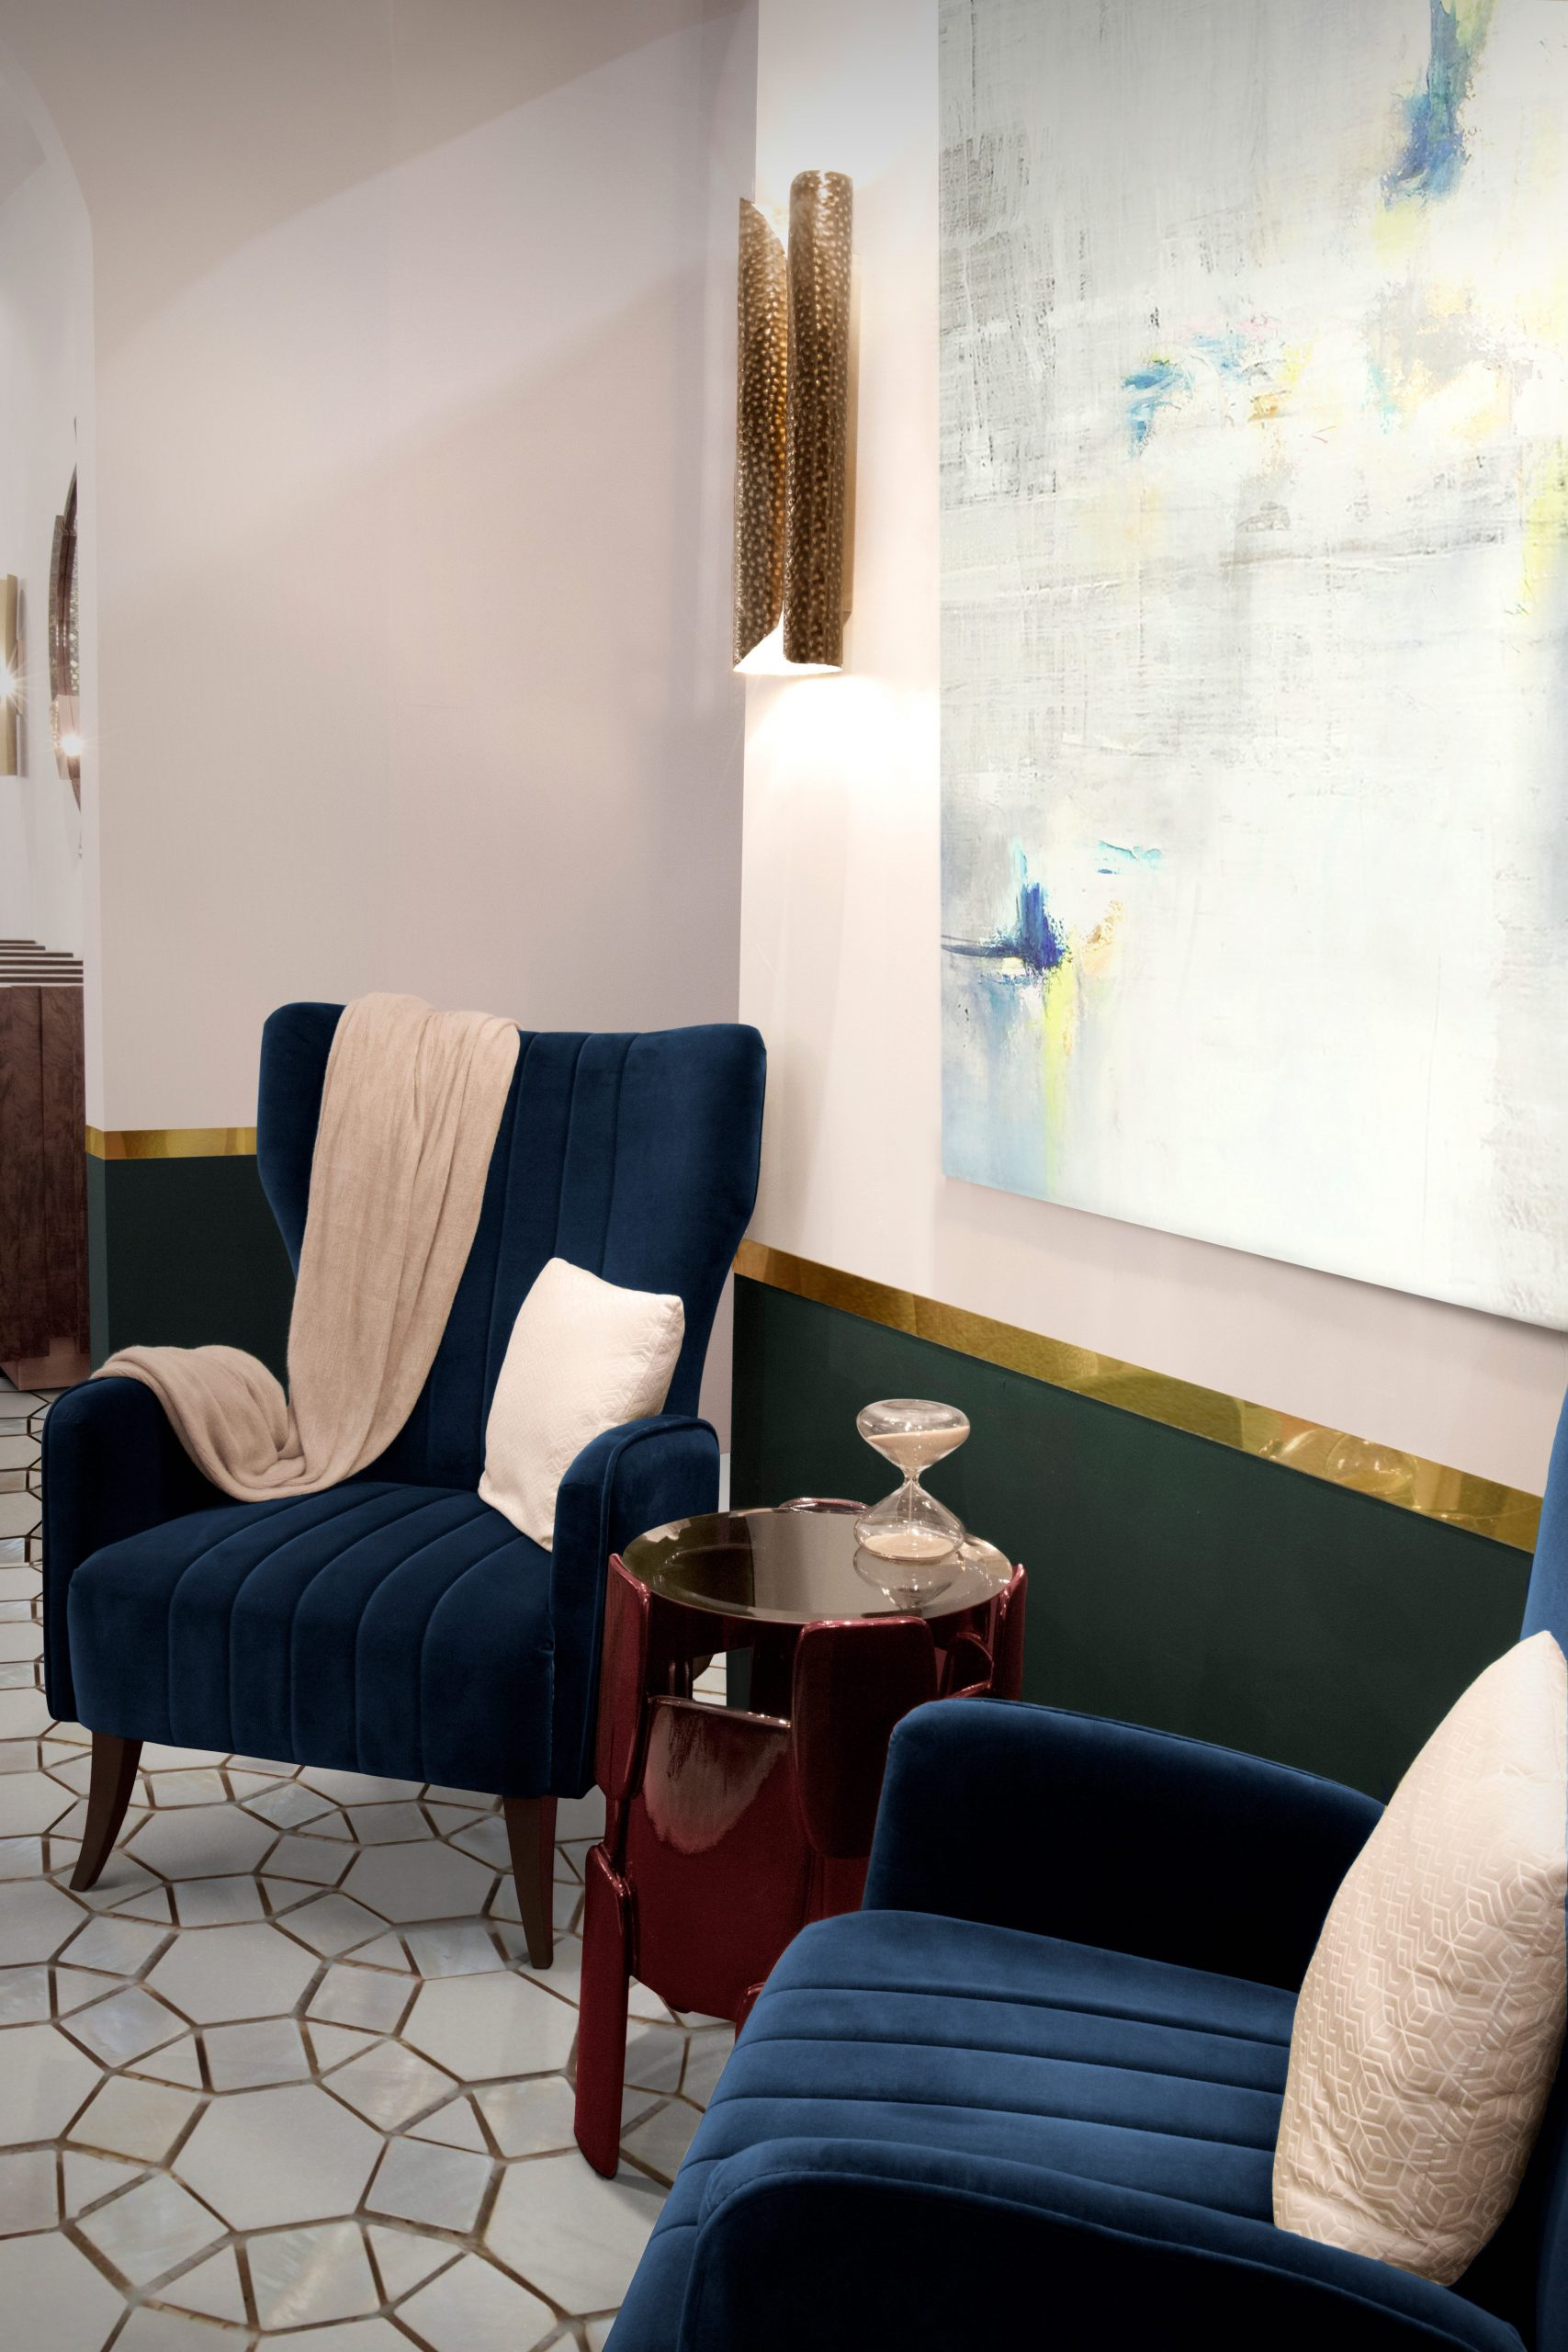 Hotel Lobbies and Waiting Spaces: A List Of 20 Modern Armchairs  modern armchairs Hotel Lobbies And Waiting Spaces: A List Of 20 Modern Armchairs Hotel Lobbies and Waiting Spaces A List Of 20 Modern Armchairs 13 scaled